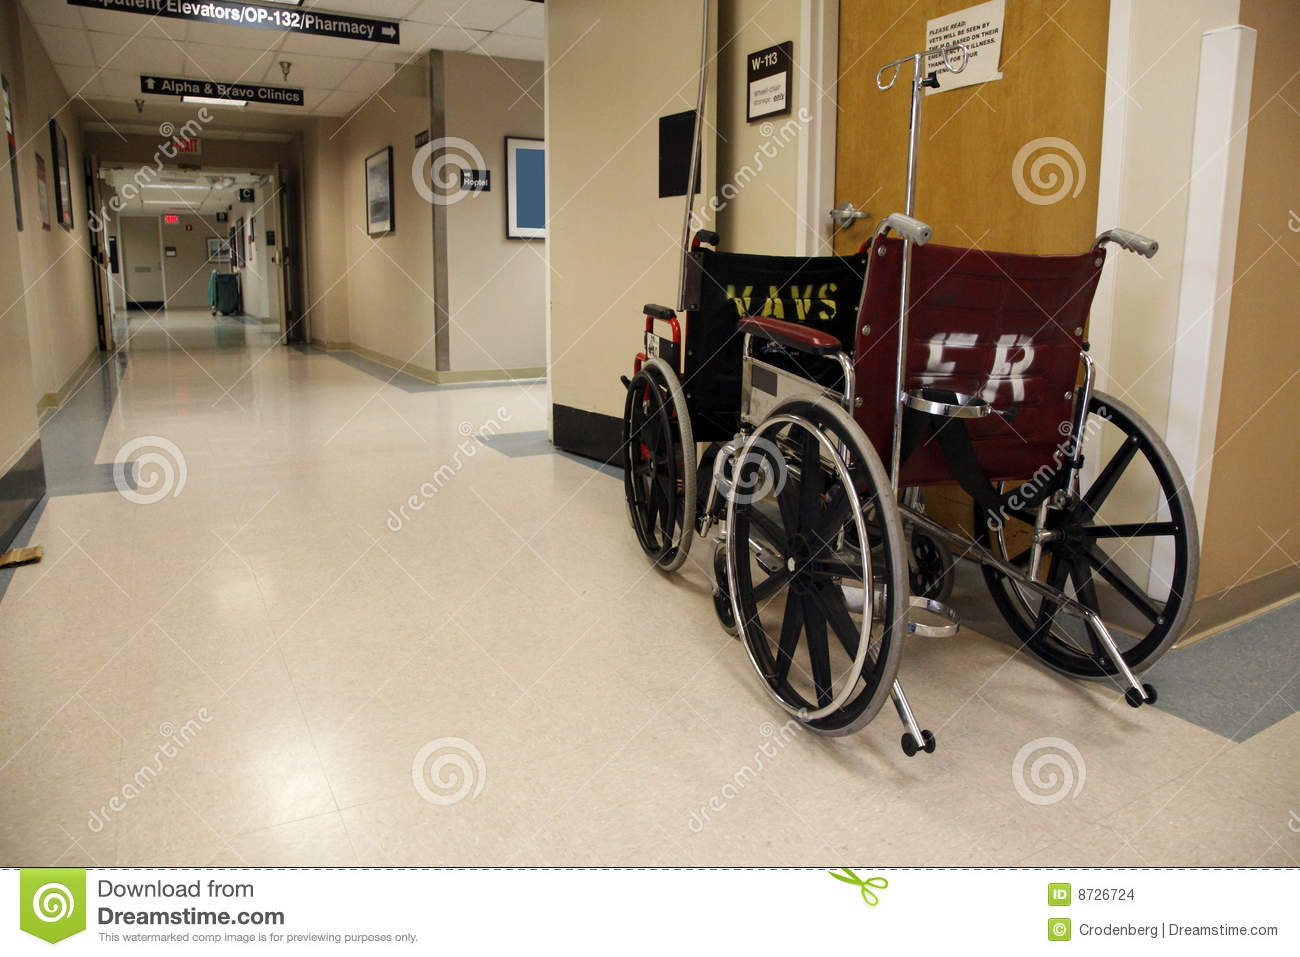 Wheelchairs and hallway